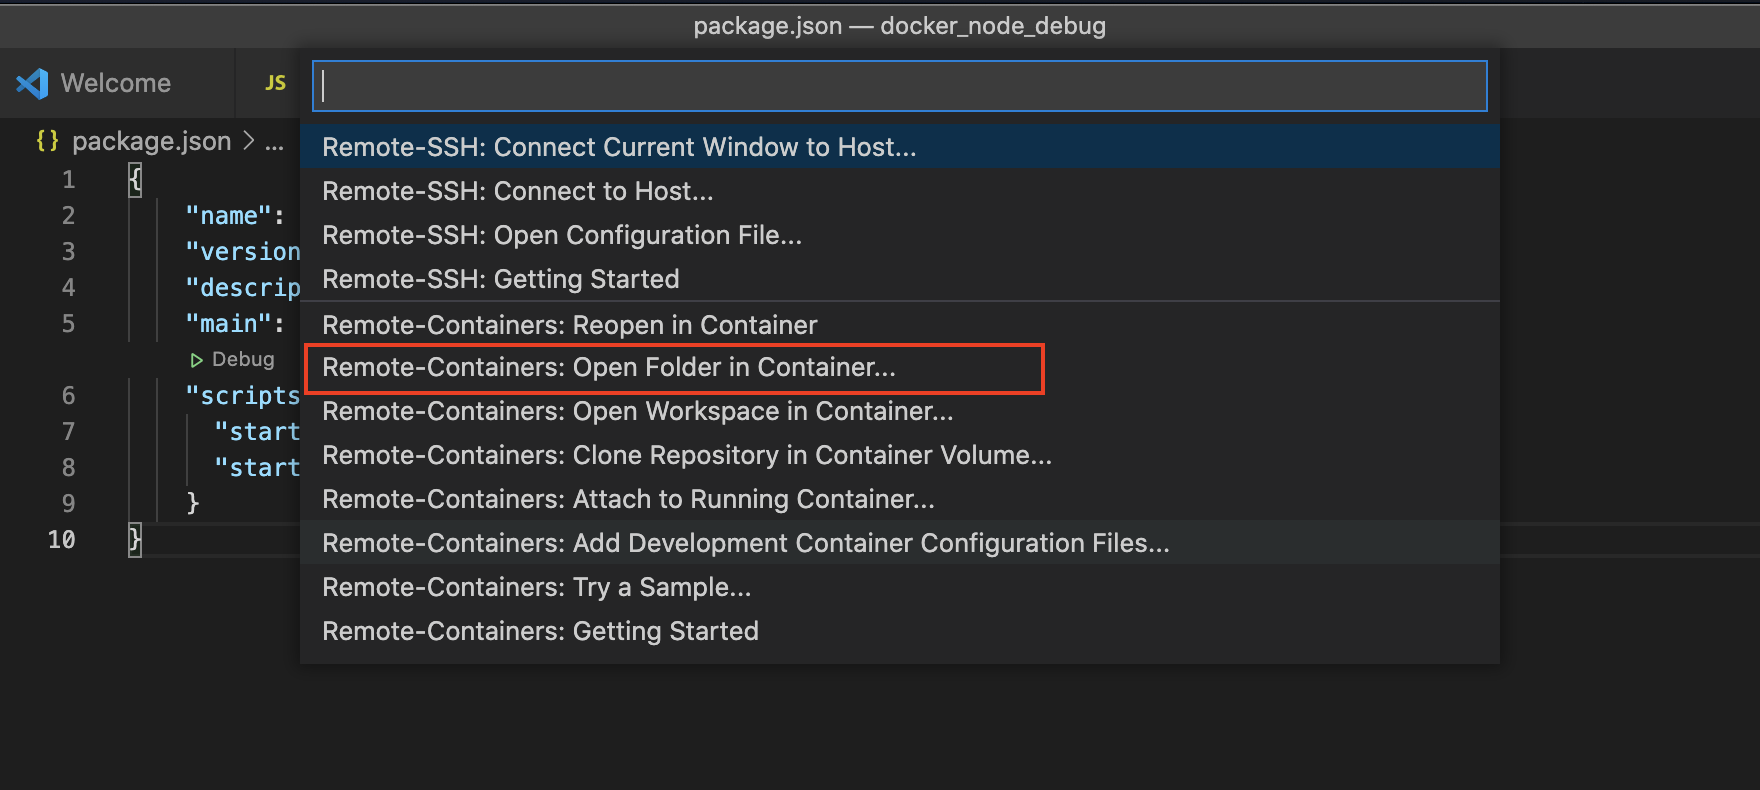 Remote-Containers: Open Folder in Container...